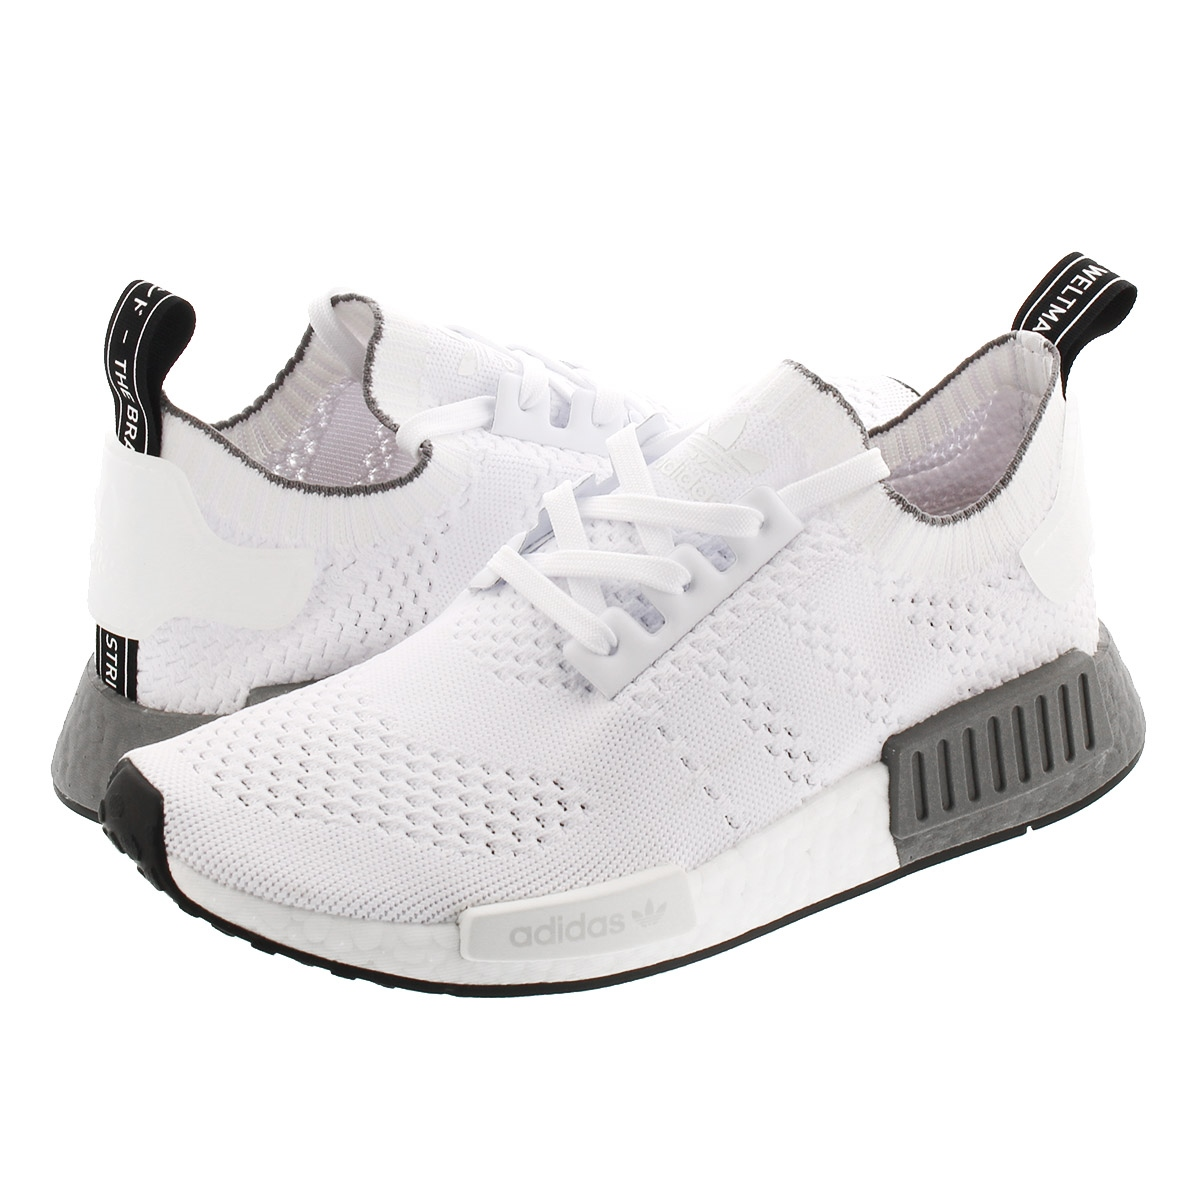 newest 1164f 9d1ff adidas NMD_R1 PK Adidas NMD R1 PK RUNNING WHITE/RUNNING WHITE/GERY THREE  ee5074